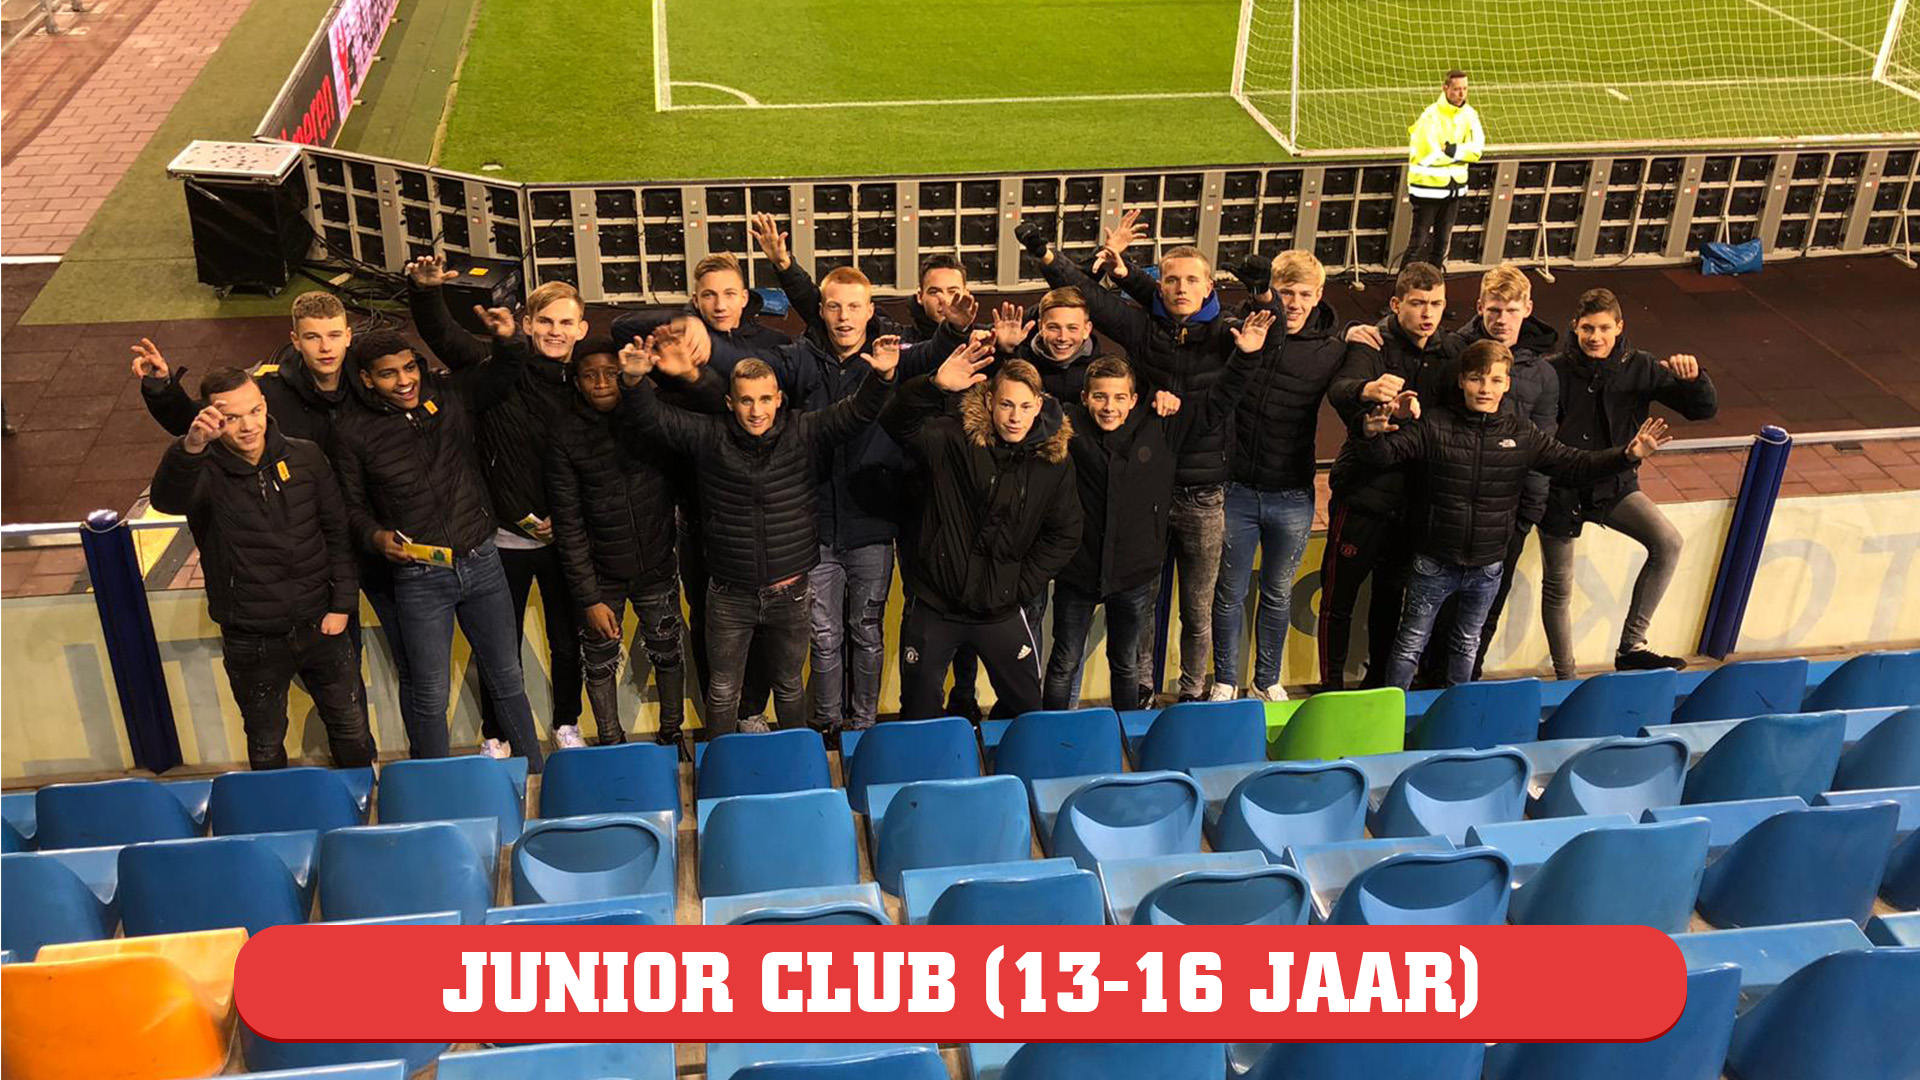 Junior Club image